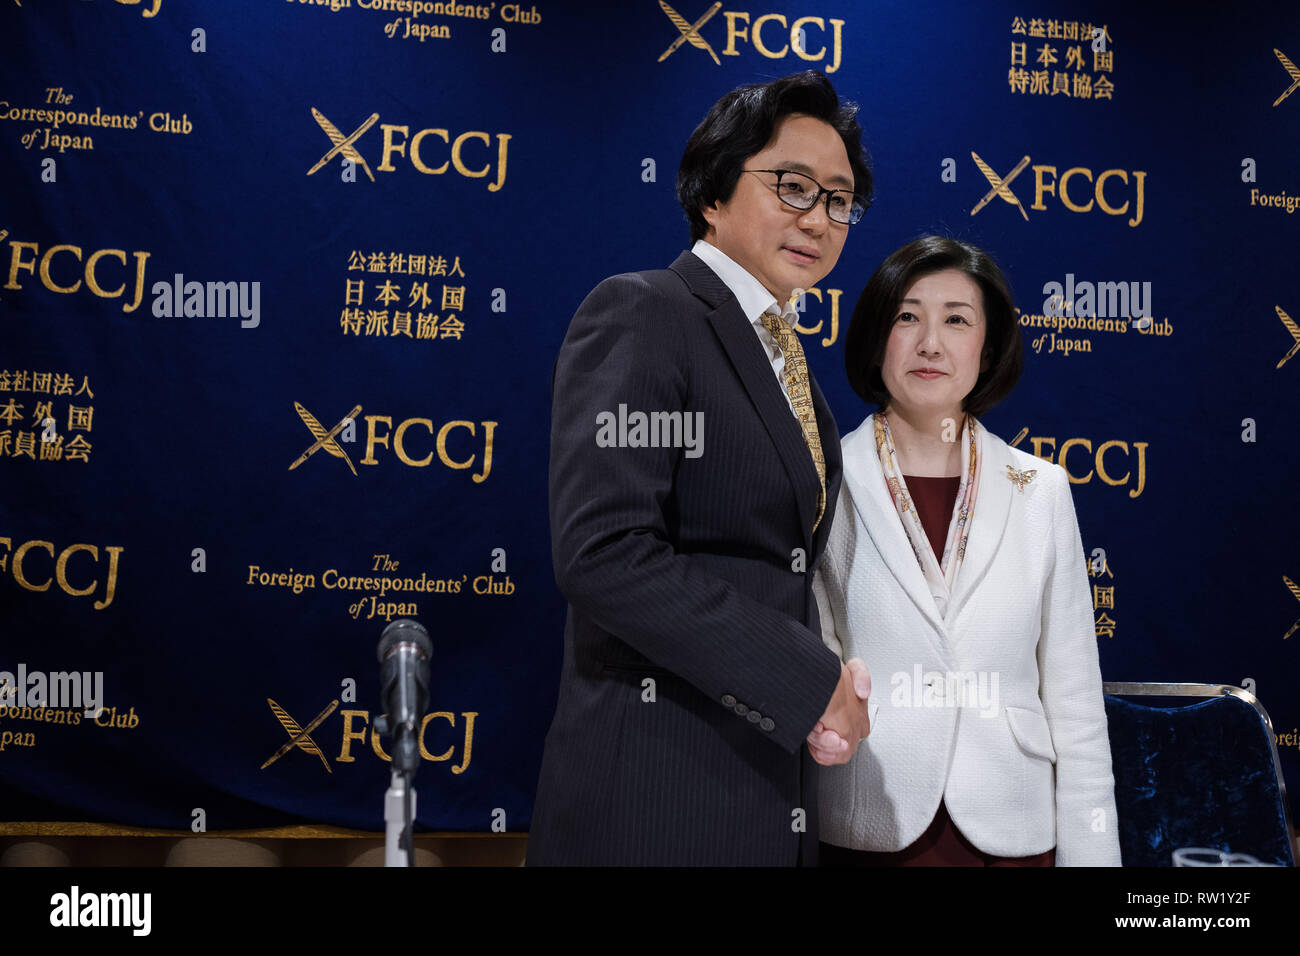 Otsuka Kagu president Kumiko Otsuka (R) poses for picture with Hai Bo Chen (L), High-Lines President before a press conference at Foreign Press Club on March 04, 2019 in Tokyo Japan. Seeking for expension in Chinese market Kumiko Otsuka talks about an alliance with China's company called High-Lines. March 04, 2019 Credit: Nicolas Datiche/AFLO/Alamy Live News Stock Photo